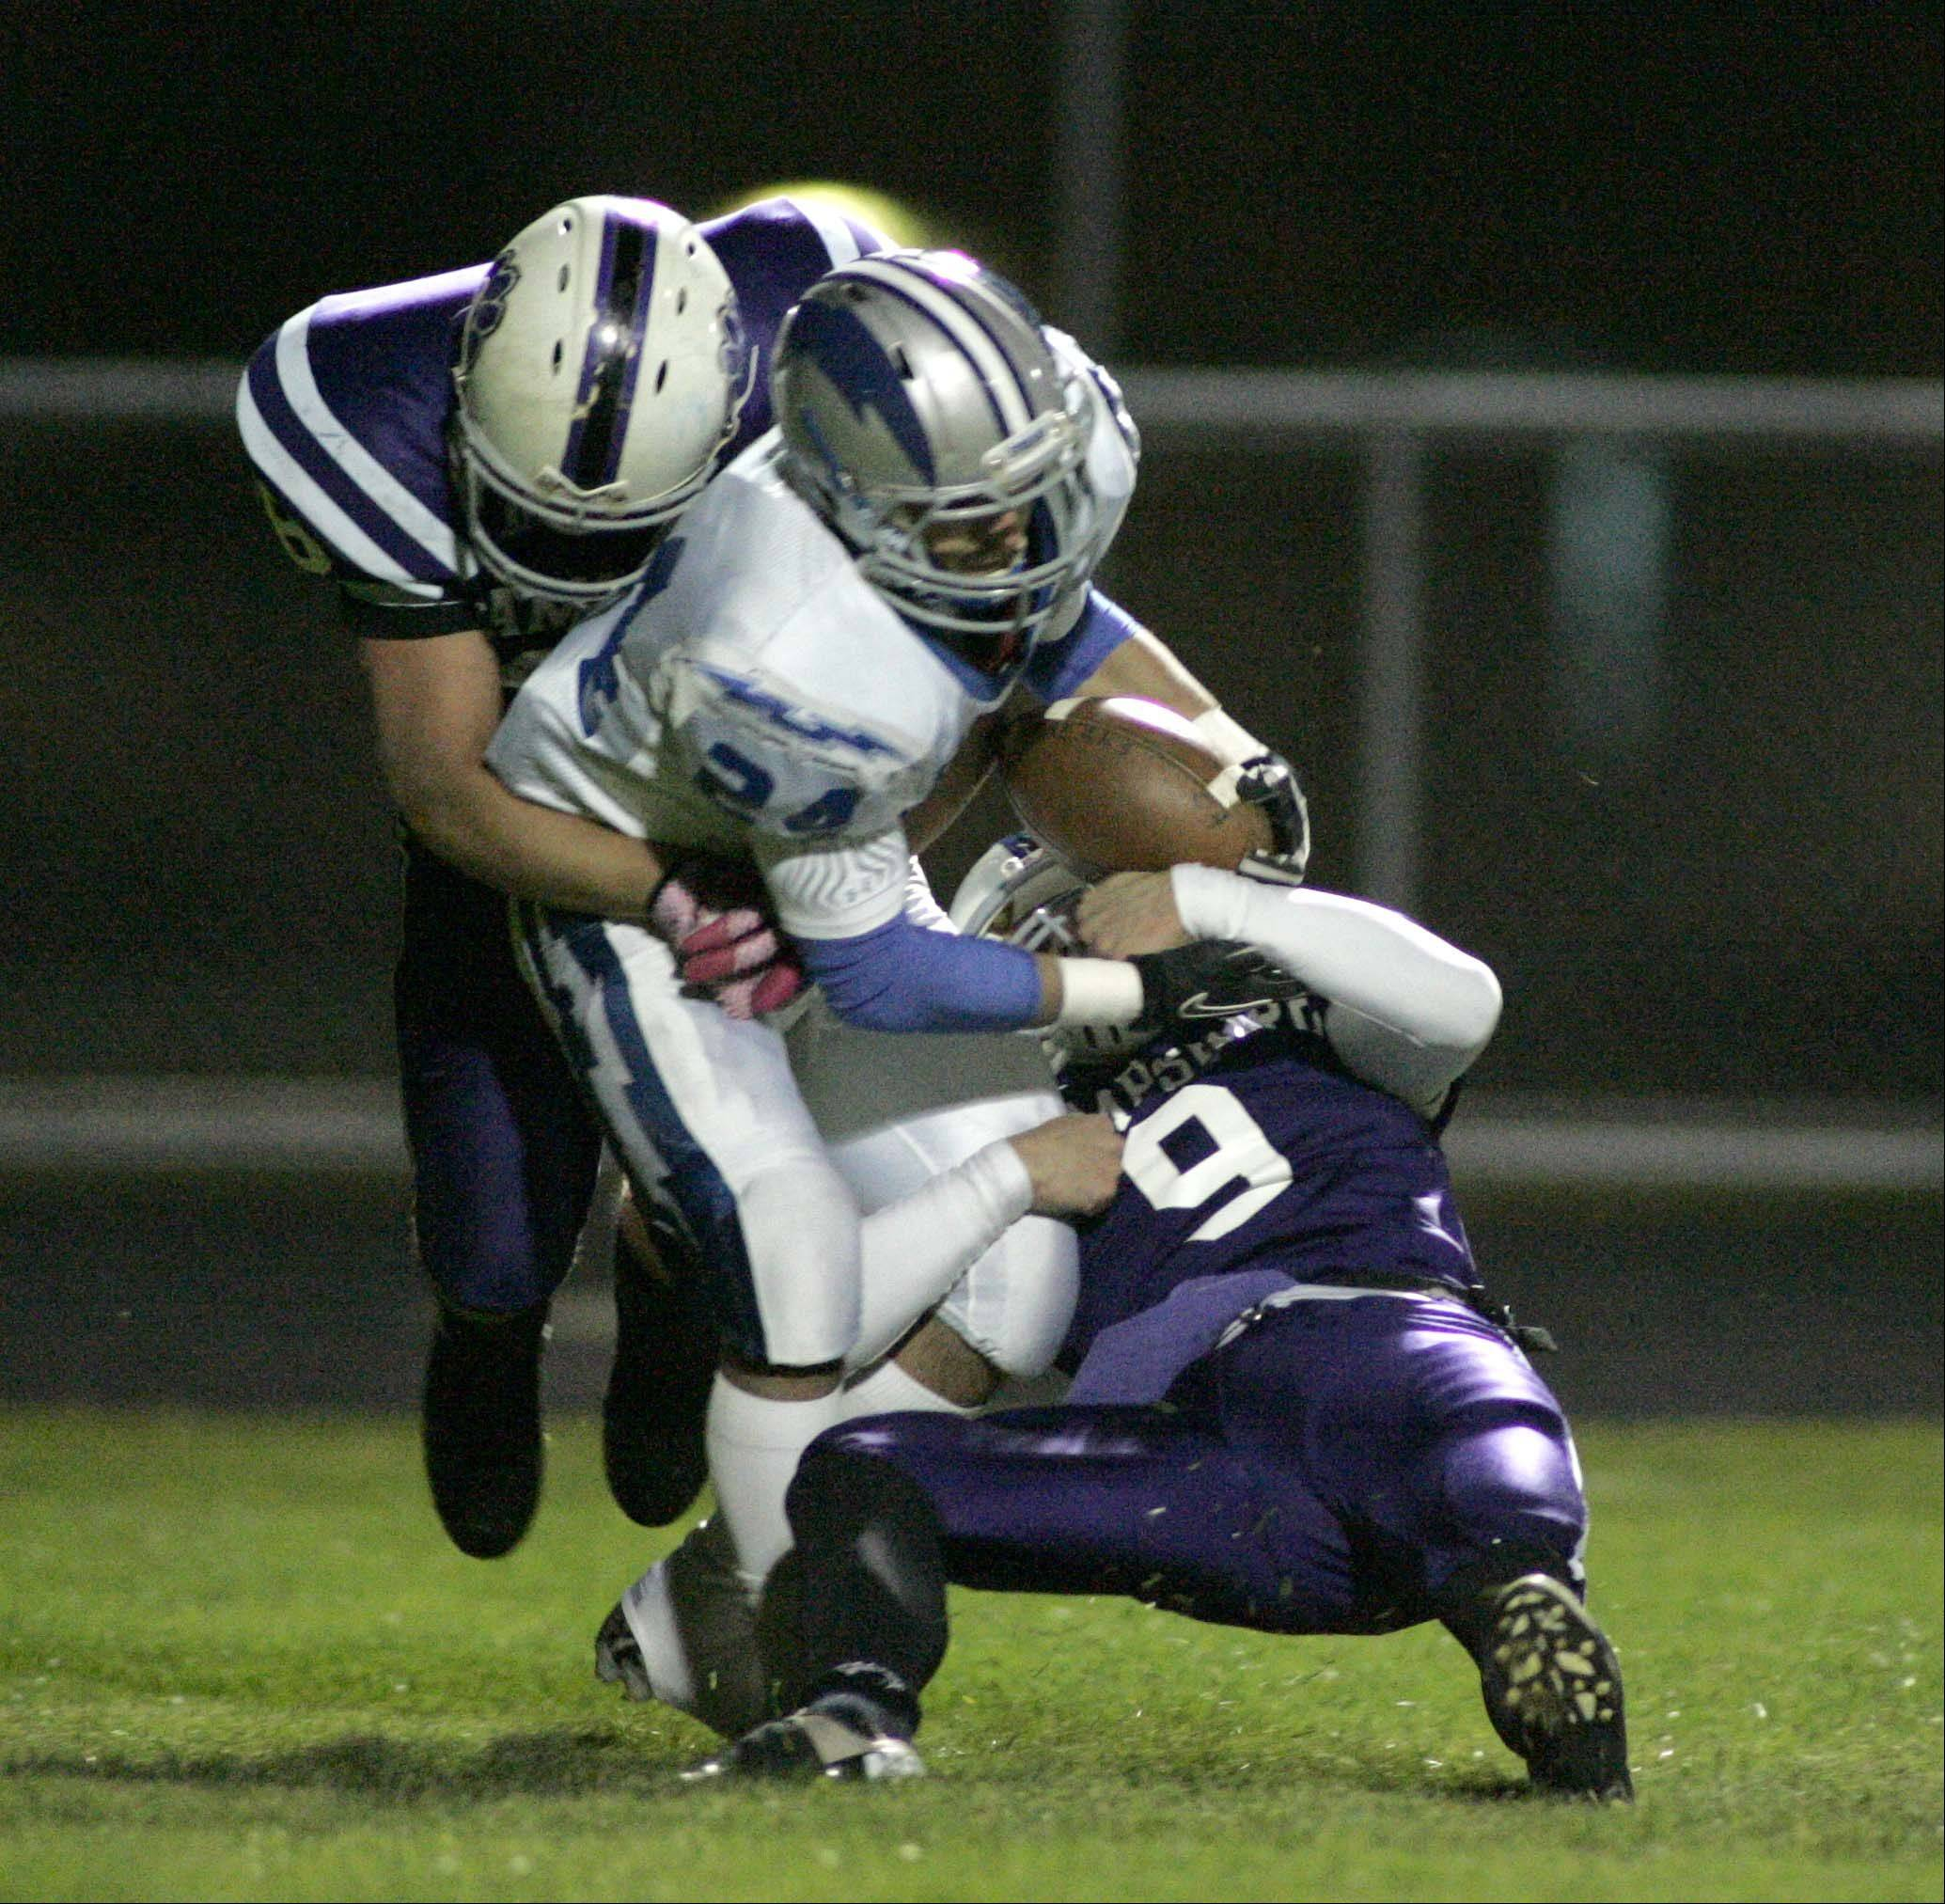 Hampshire's Philip LaPointe and Kyle Anderson bring down Woodstock's Mike Santucci for a safety in the first quarter.